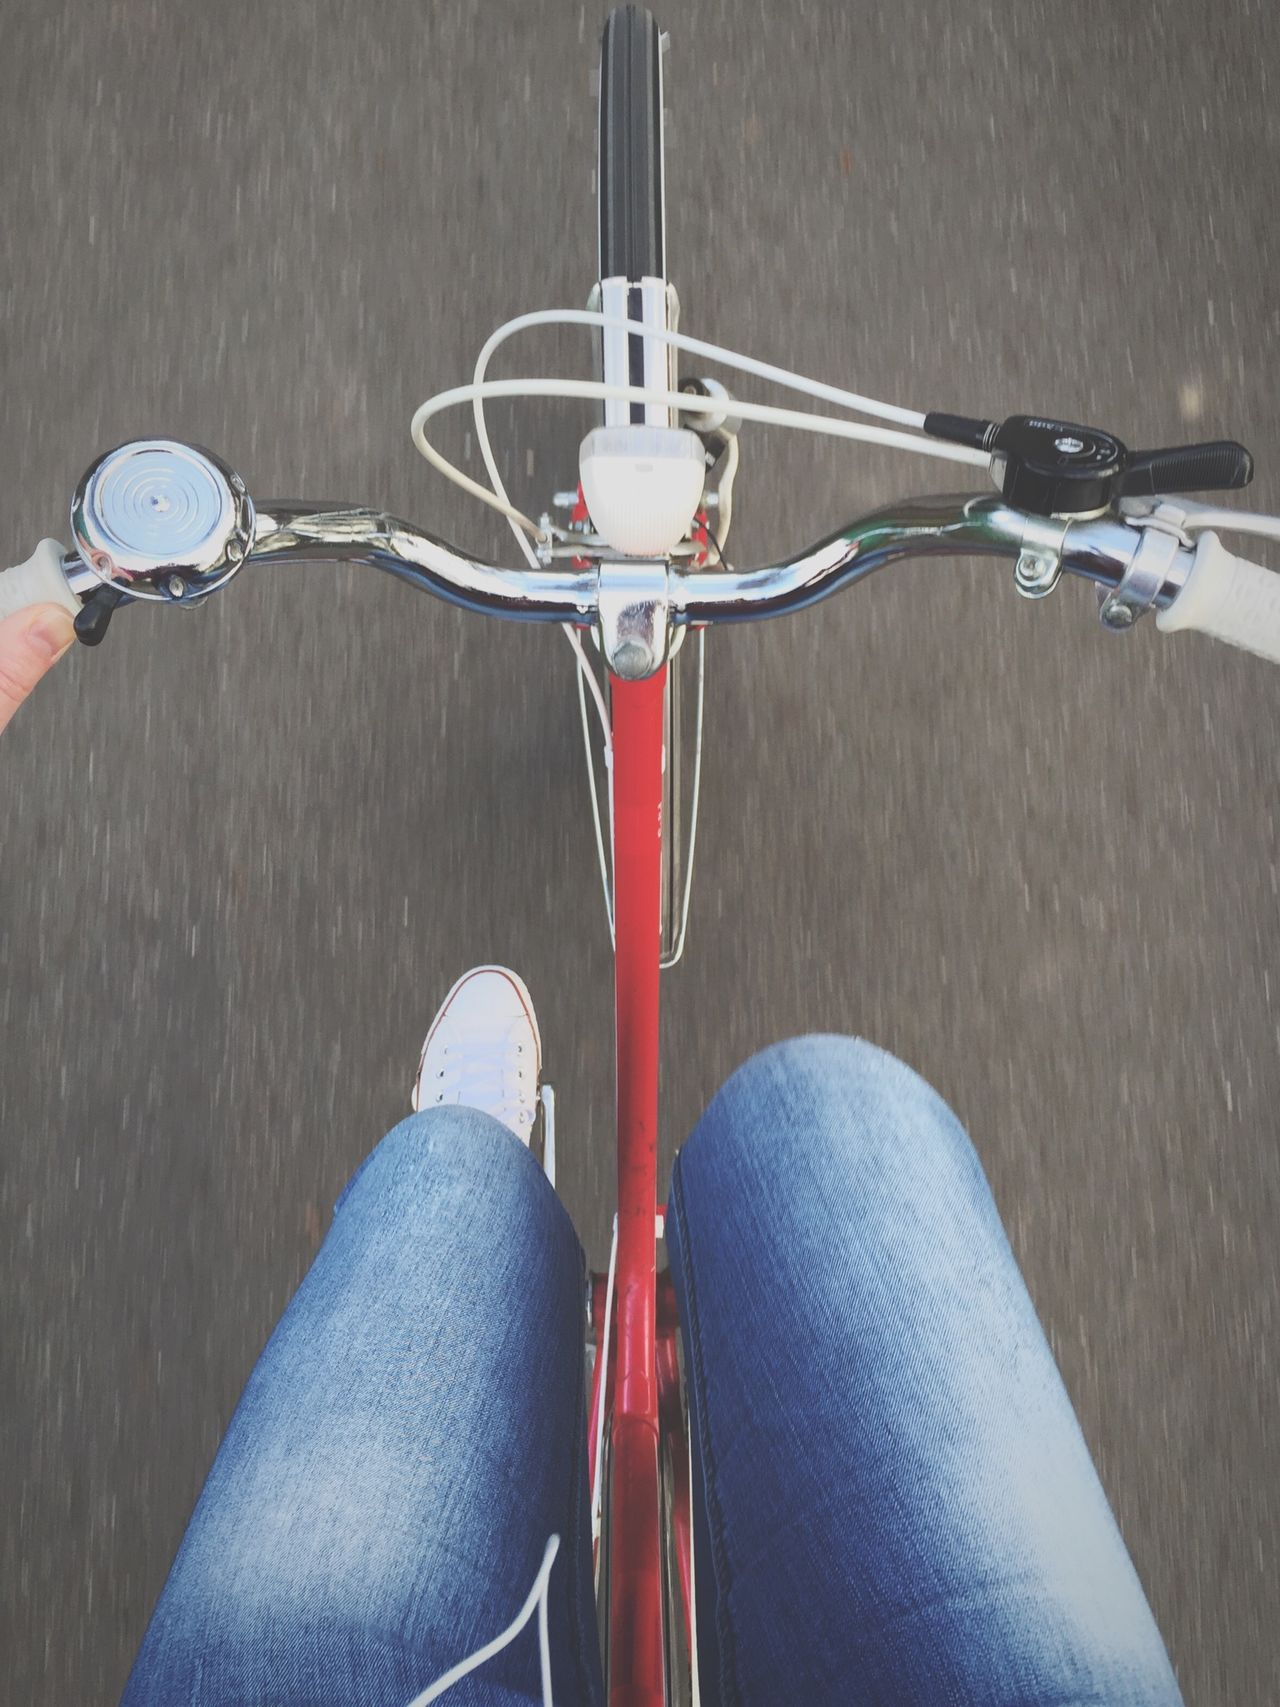 Schwarz Dont Crack | All My Love My Unique Style Bicyclove My New Baby Life In Motion Beauty In Ordinary Things On The Road Rush Hour Gedankenkonfetti Wolkenkuckucksnest On The Move